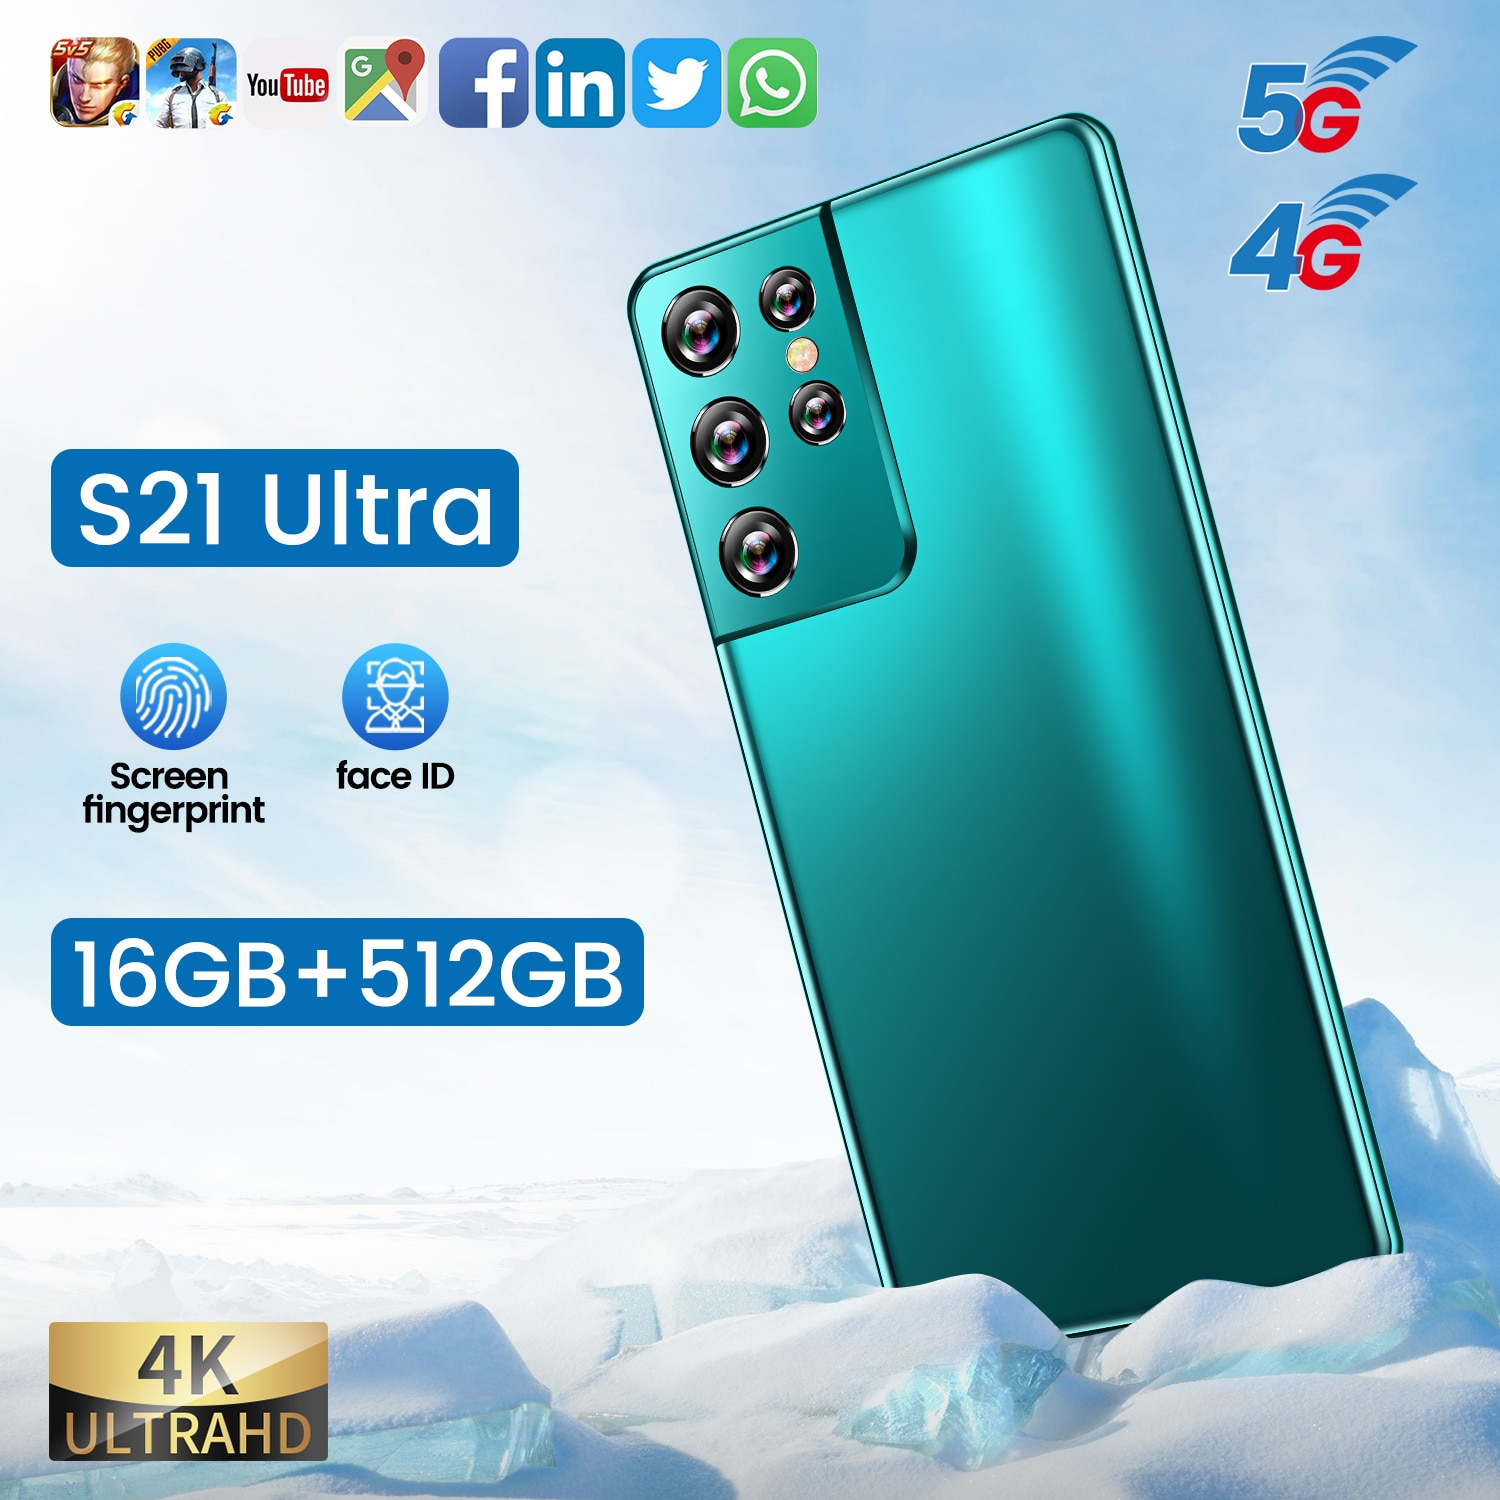 5G LTE Smartphone S21 Ultra 4G Sansumg Galay 11 Core Snapdragon888 6.1Inch Cellphone Fingerprint ID 16+512GB Mobile Phone